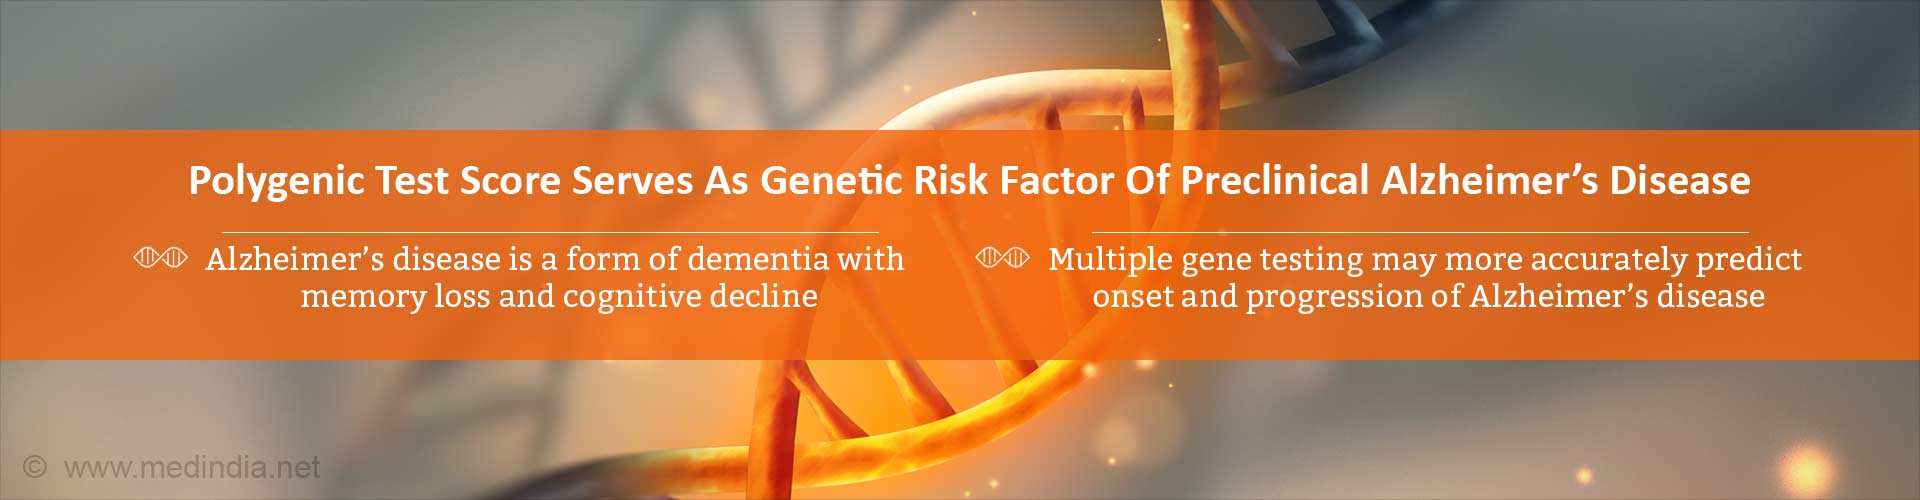 Predicting Alzheimer's Disease Risk- Multiple Gene Testing Better Than APOE Gene Testing Alone